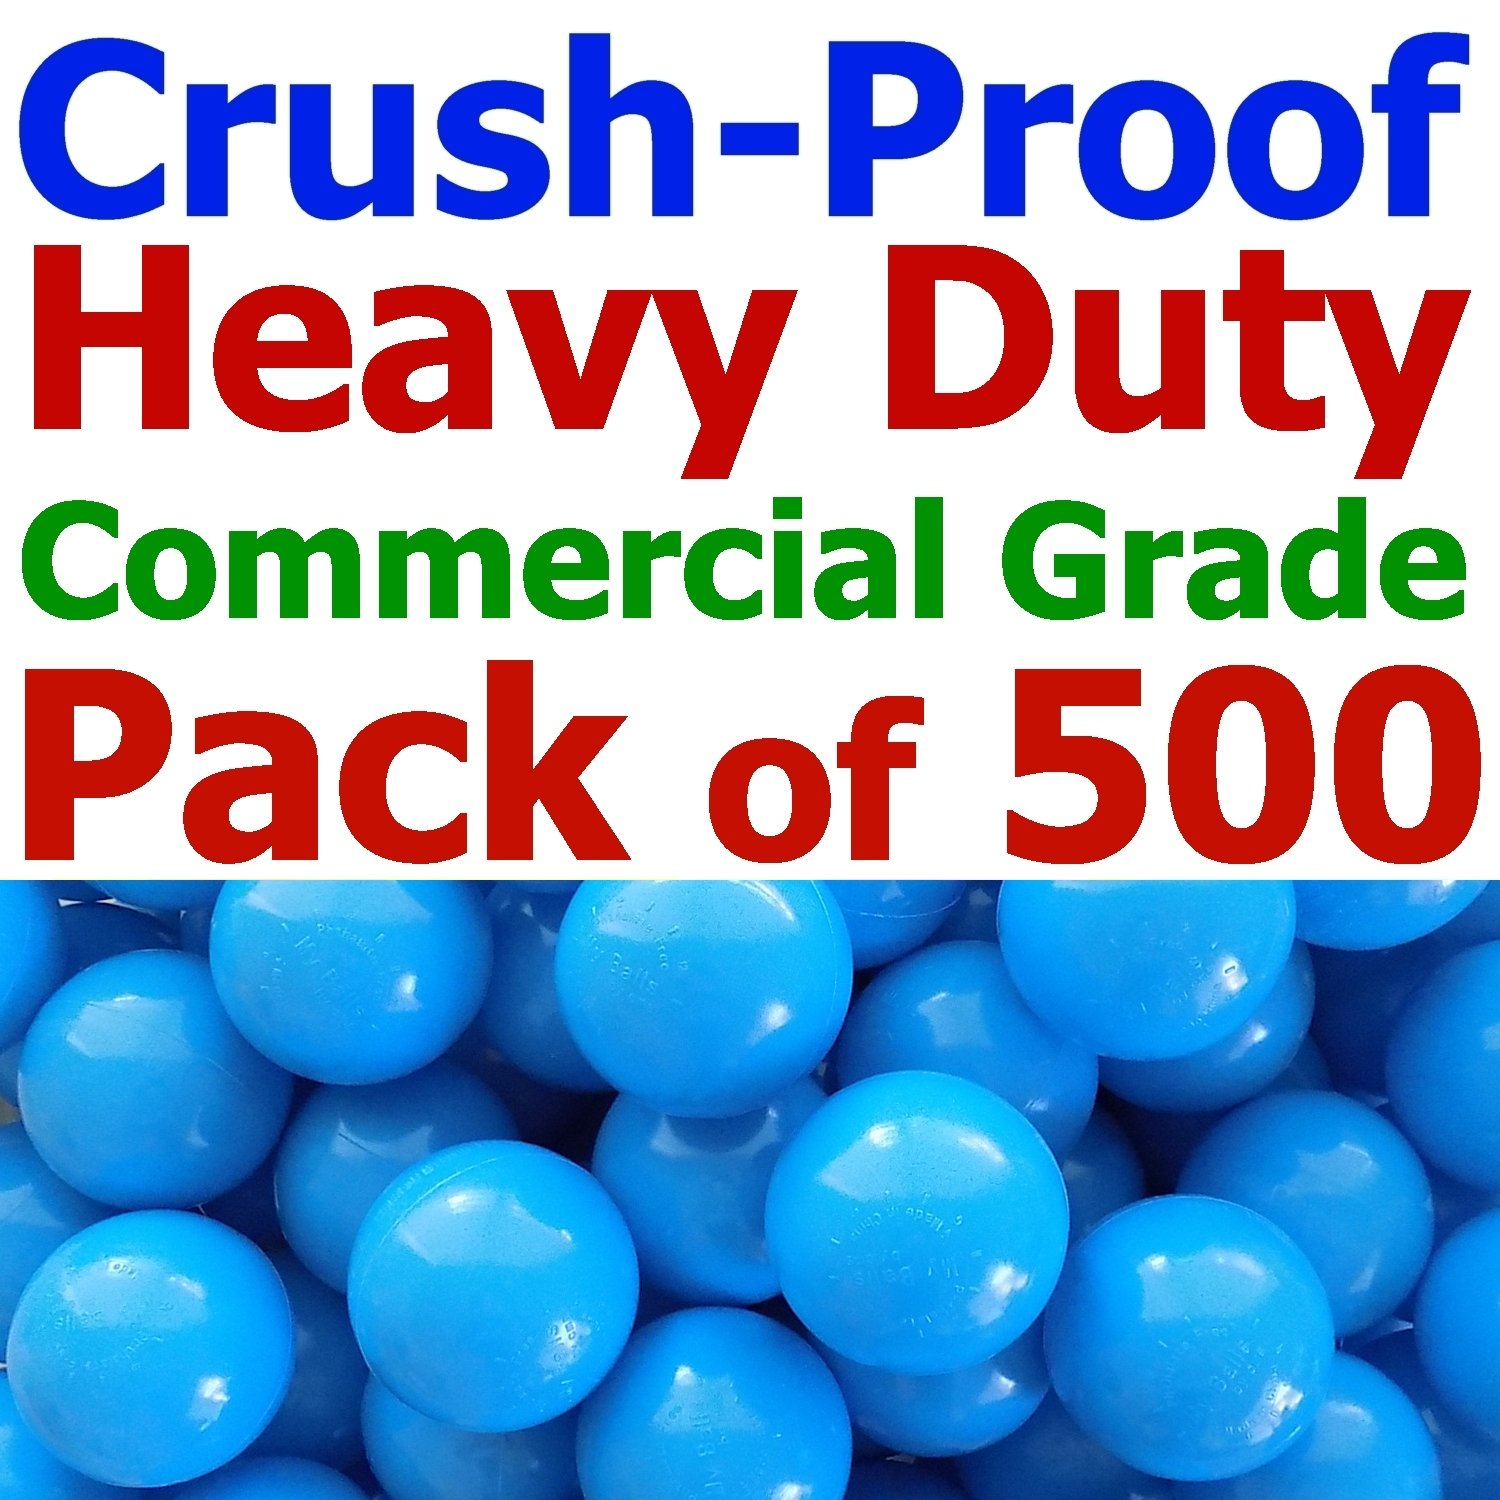 My Balls Pack of 500 Jumbo 3' Sky-Blue Color Commercial Grade Ball Pit Balls - Crush-Proof Phthalate Free BPA Free PVC Free Lead Free Non-Toxic Non-Recycled Plastic CMS